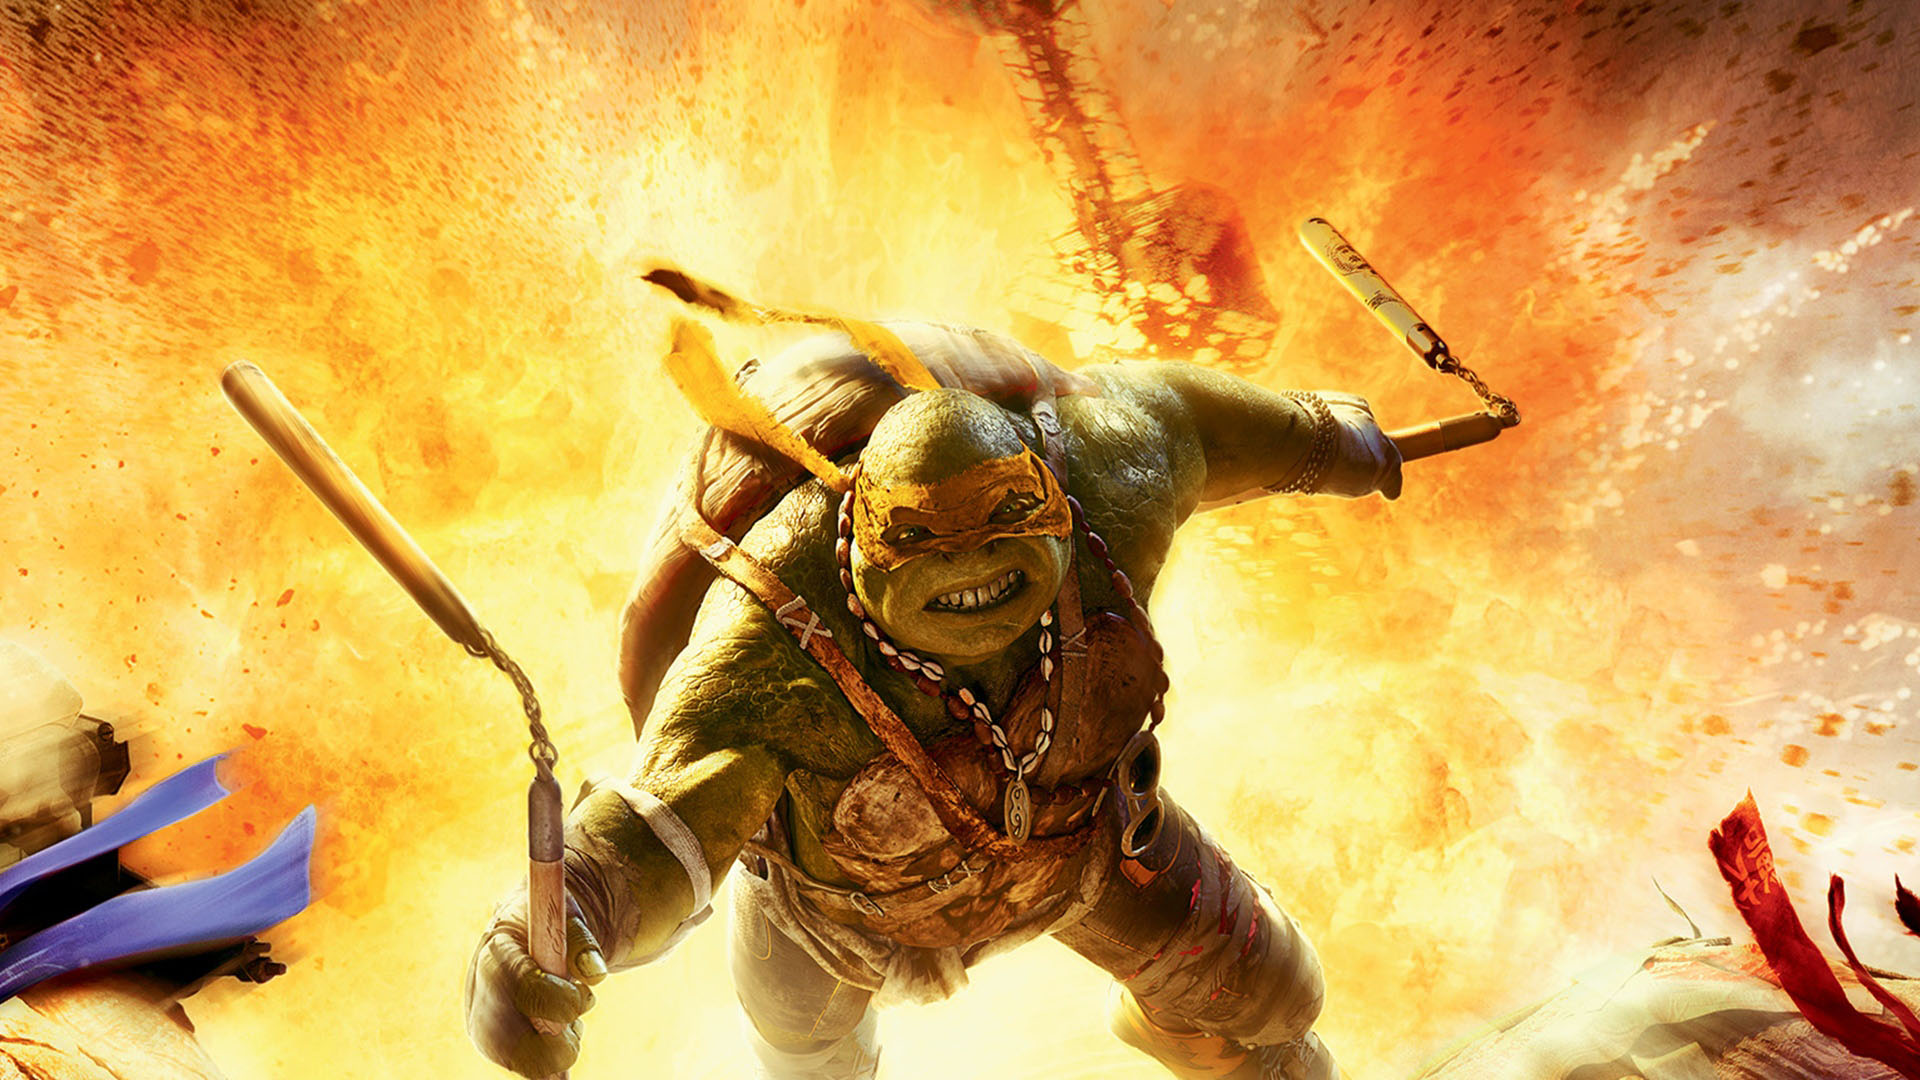 Inspirational Quotes Wallpapers For Pc Hd Tmnt Wallpapers Hd Pixelstalk Net